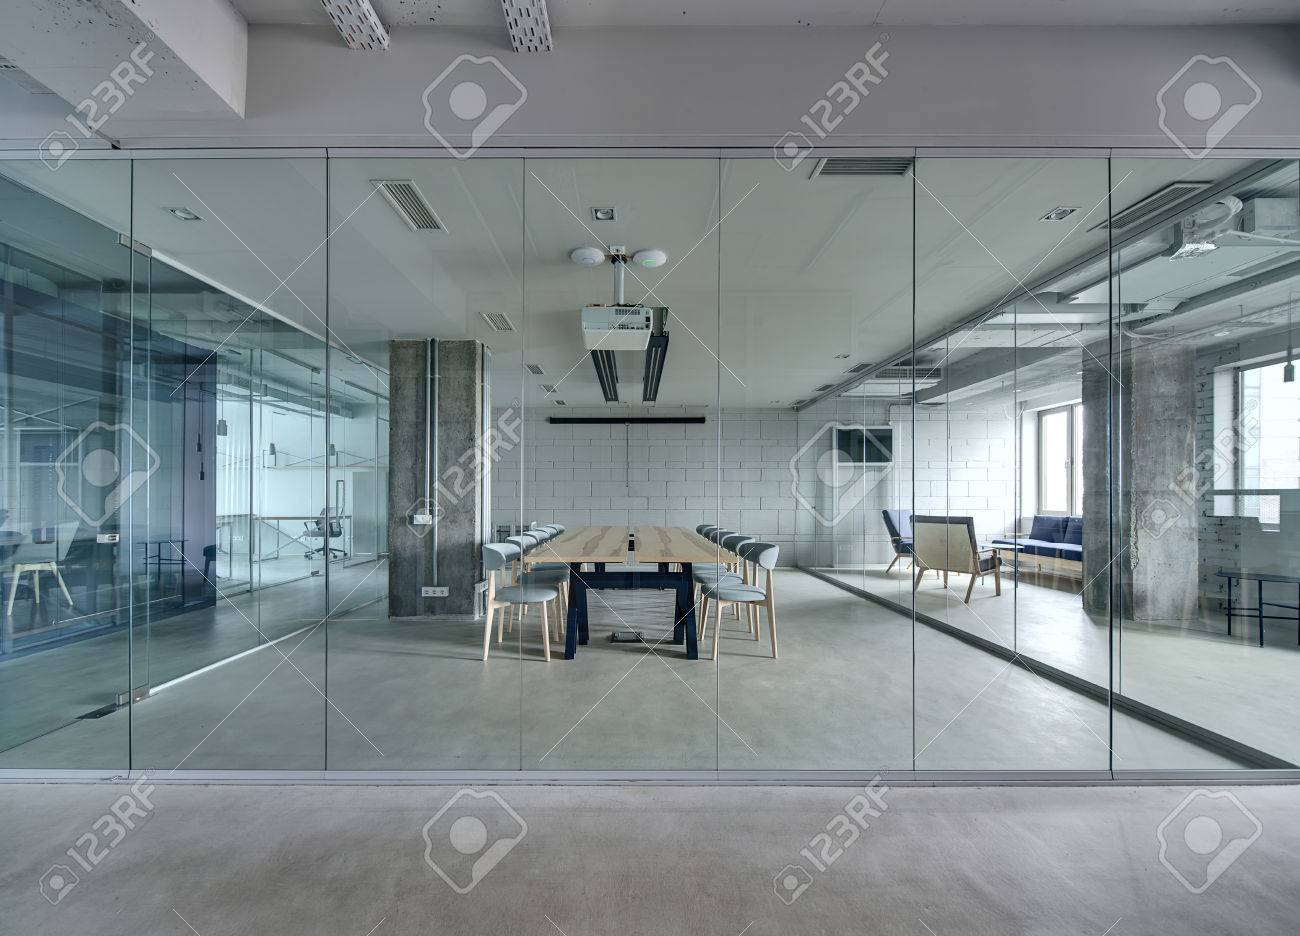 Office in a loft style with white brick walls and concrete columns. There is a meeting zone with a large wooden table with gray chairs and glass partitions. Above the table there is a projector. - 65626778